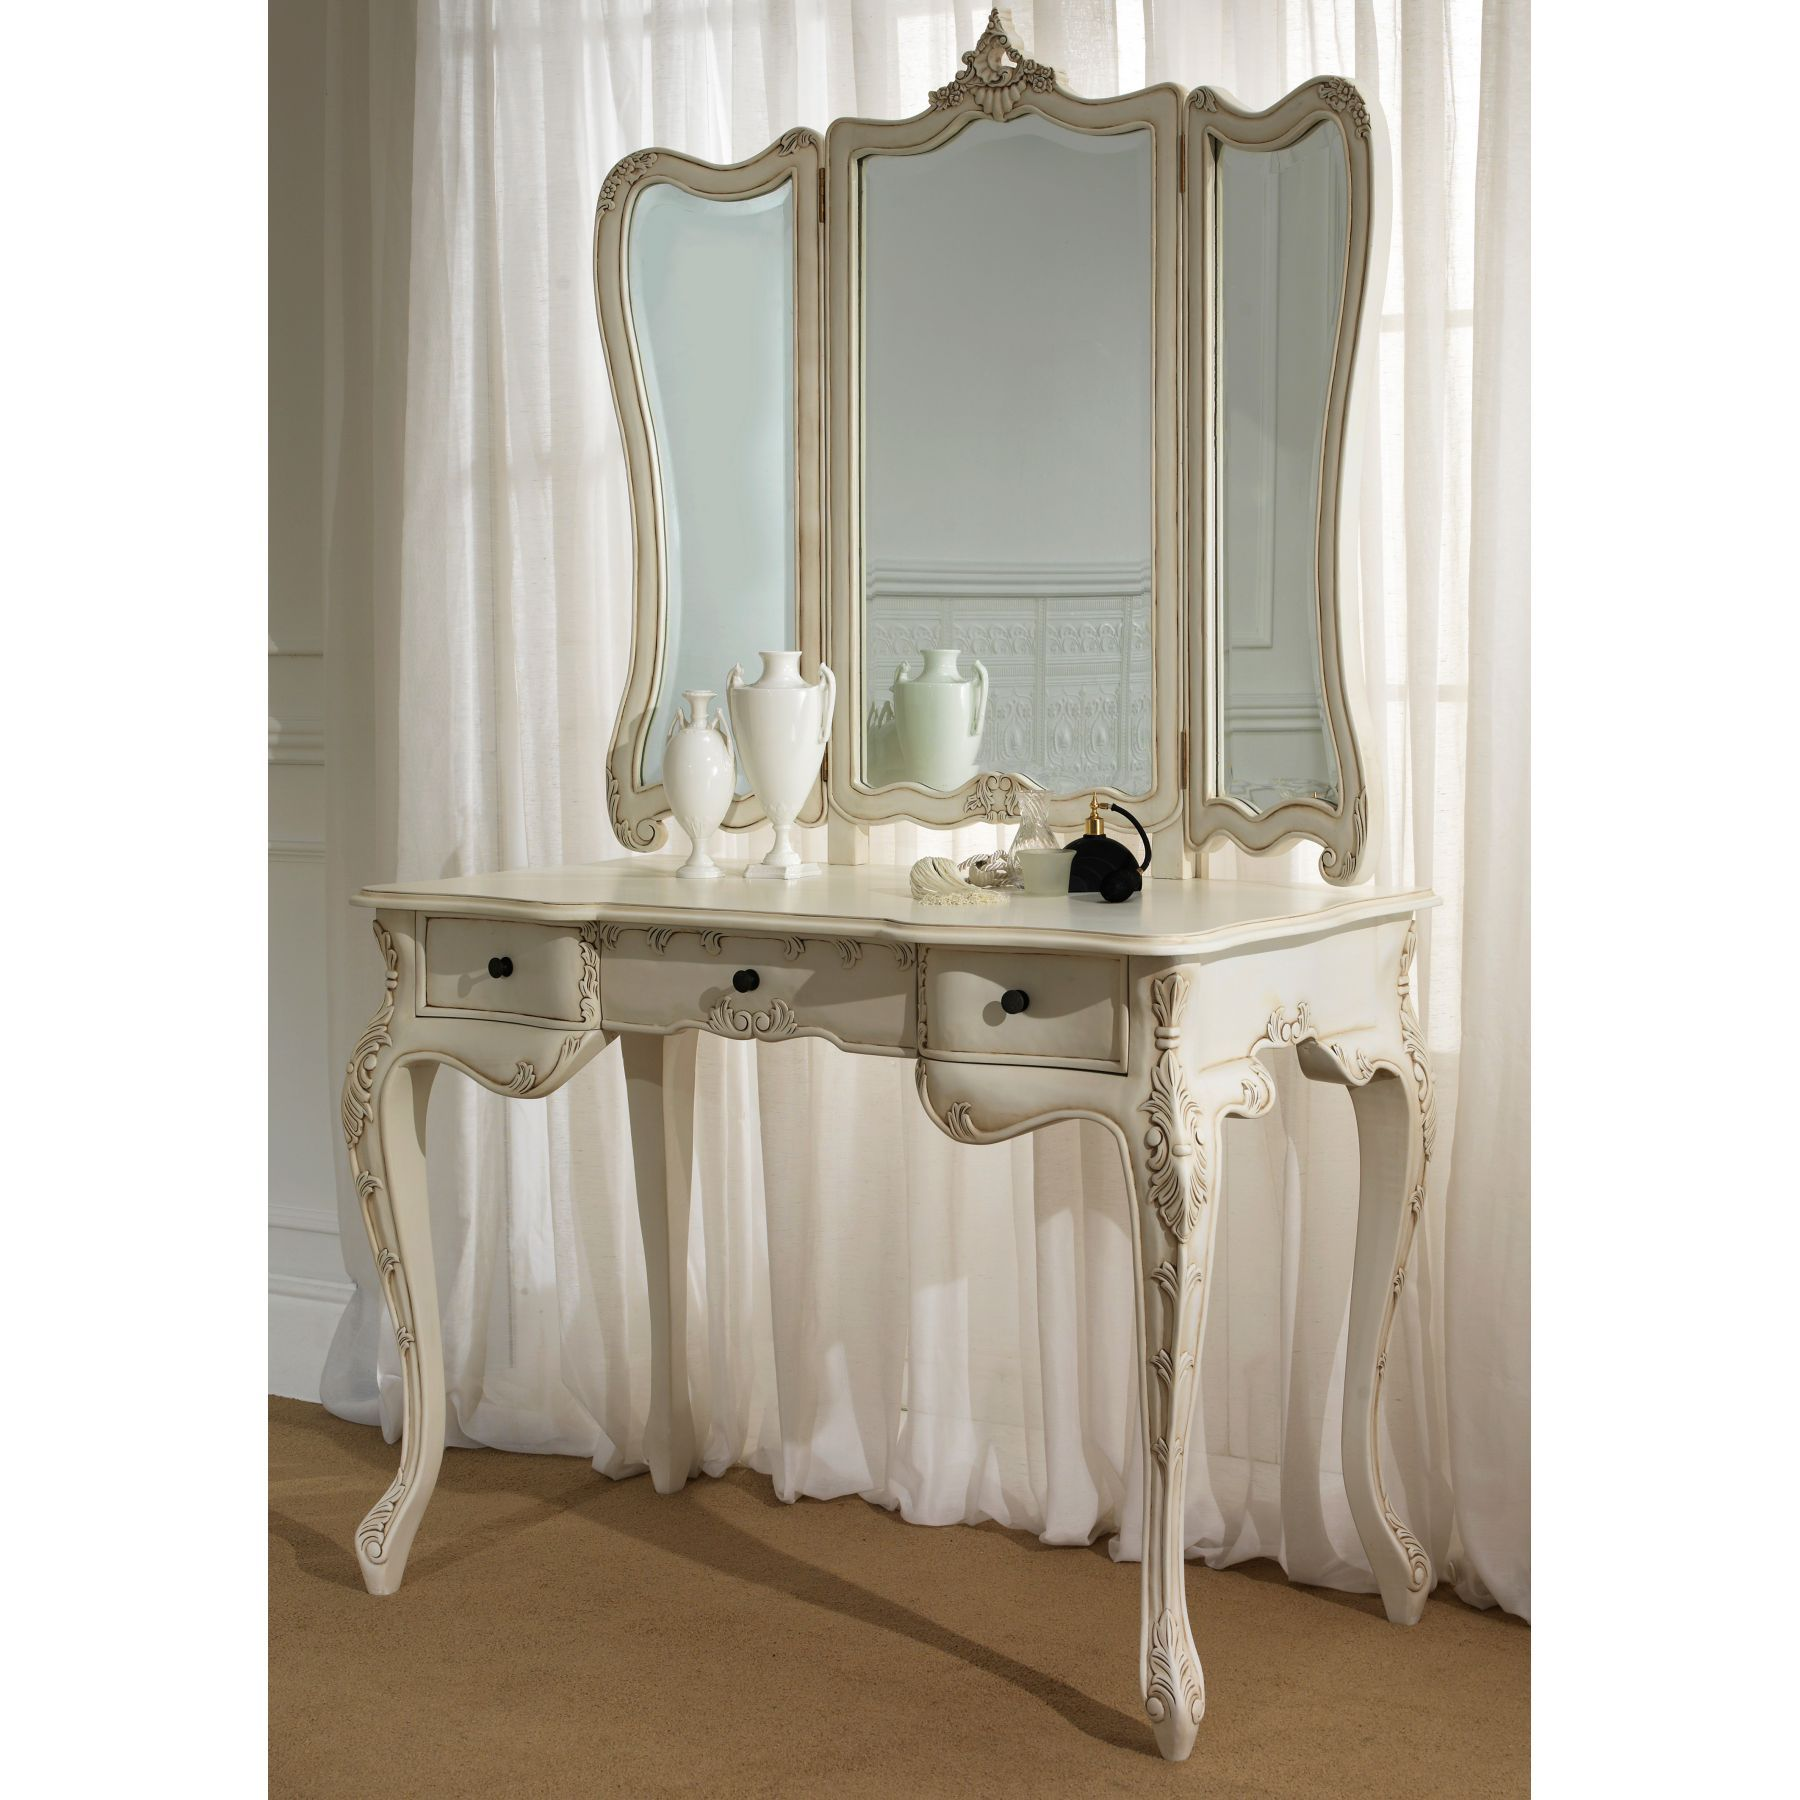 Antique dressing table with mirror - Mirror Decoration Antique Wooden Dressing Table